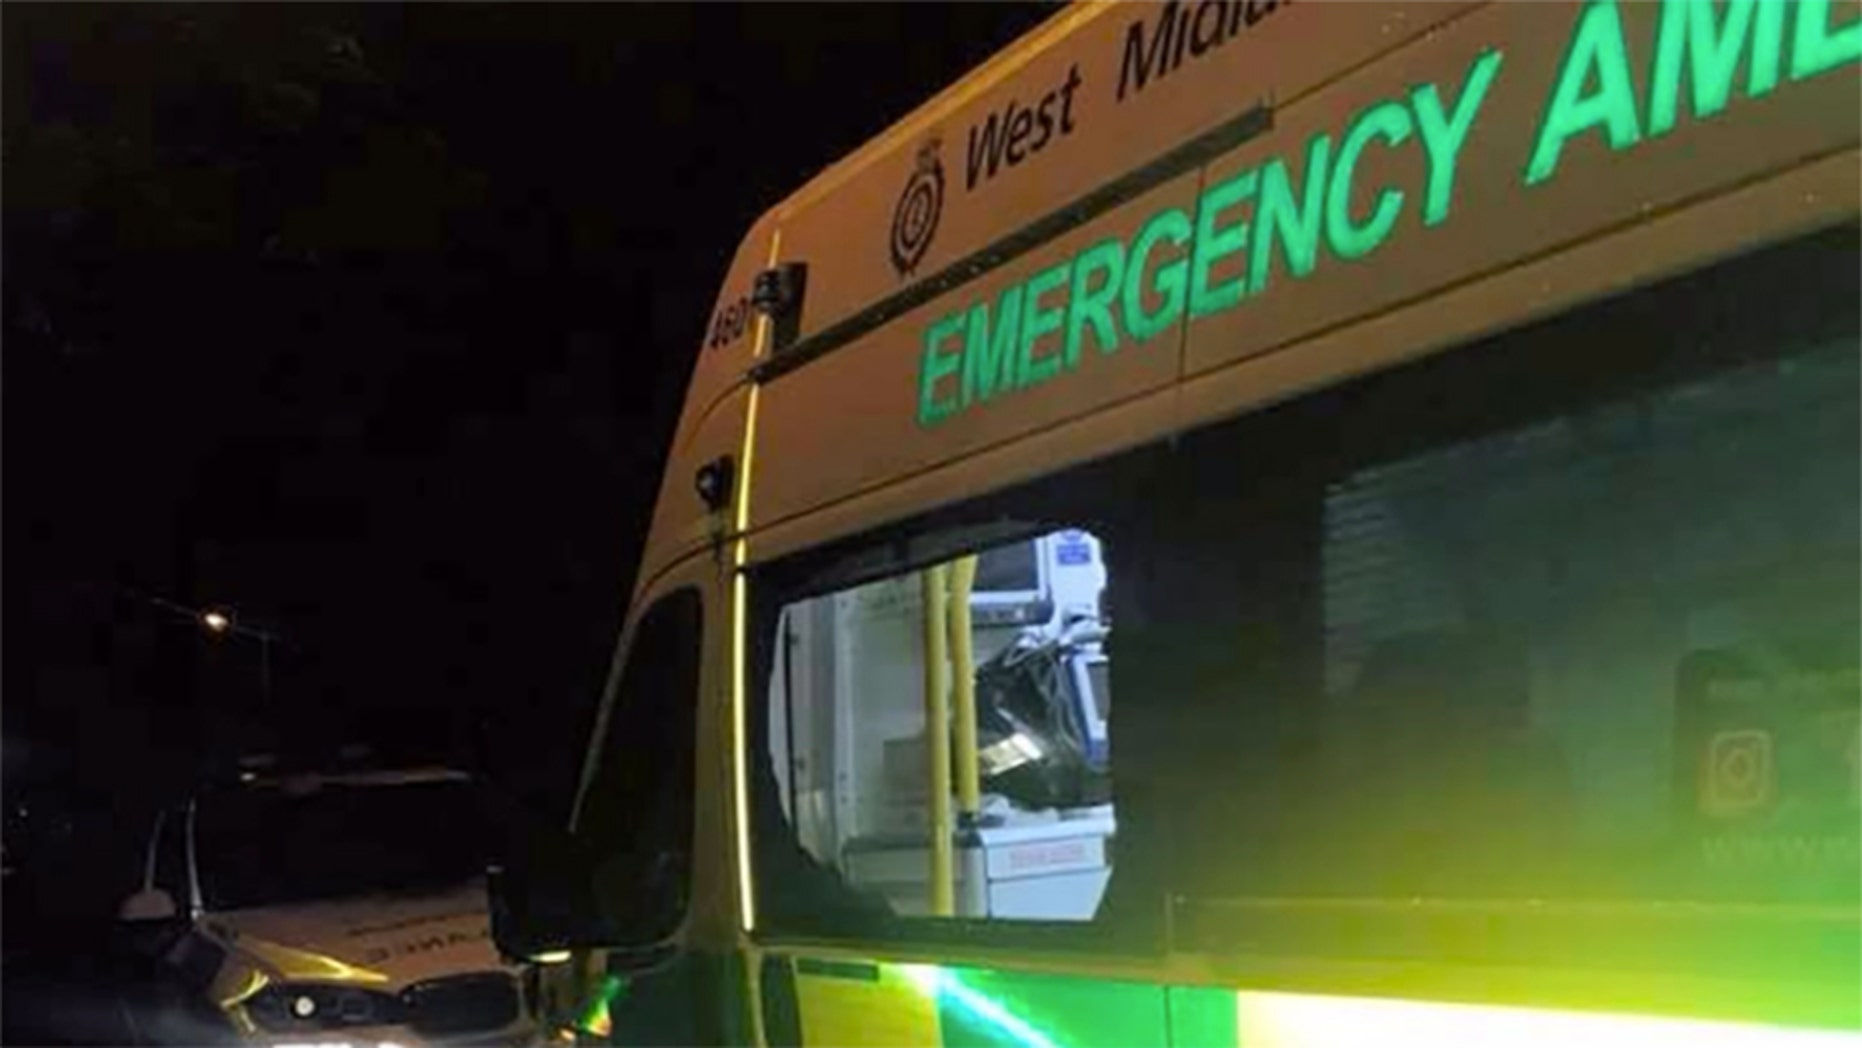 Police were looking for thieves who snatched life-saving equipment and several personal belongings from an ambulance while paramedics were responding to a call.